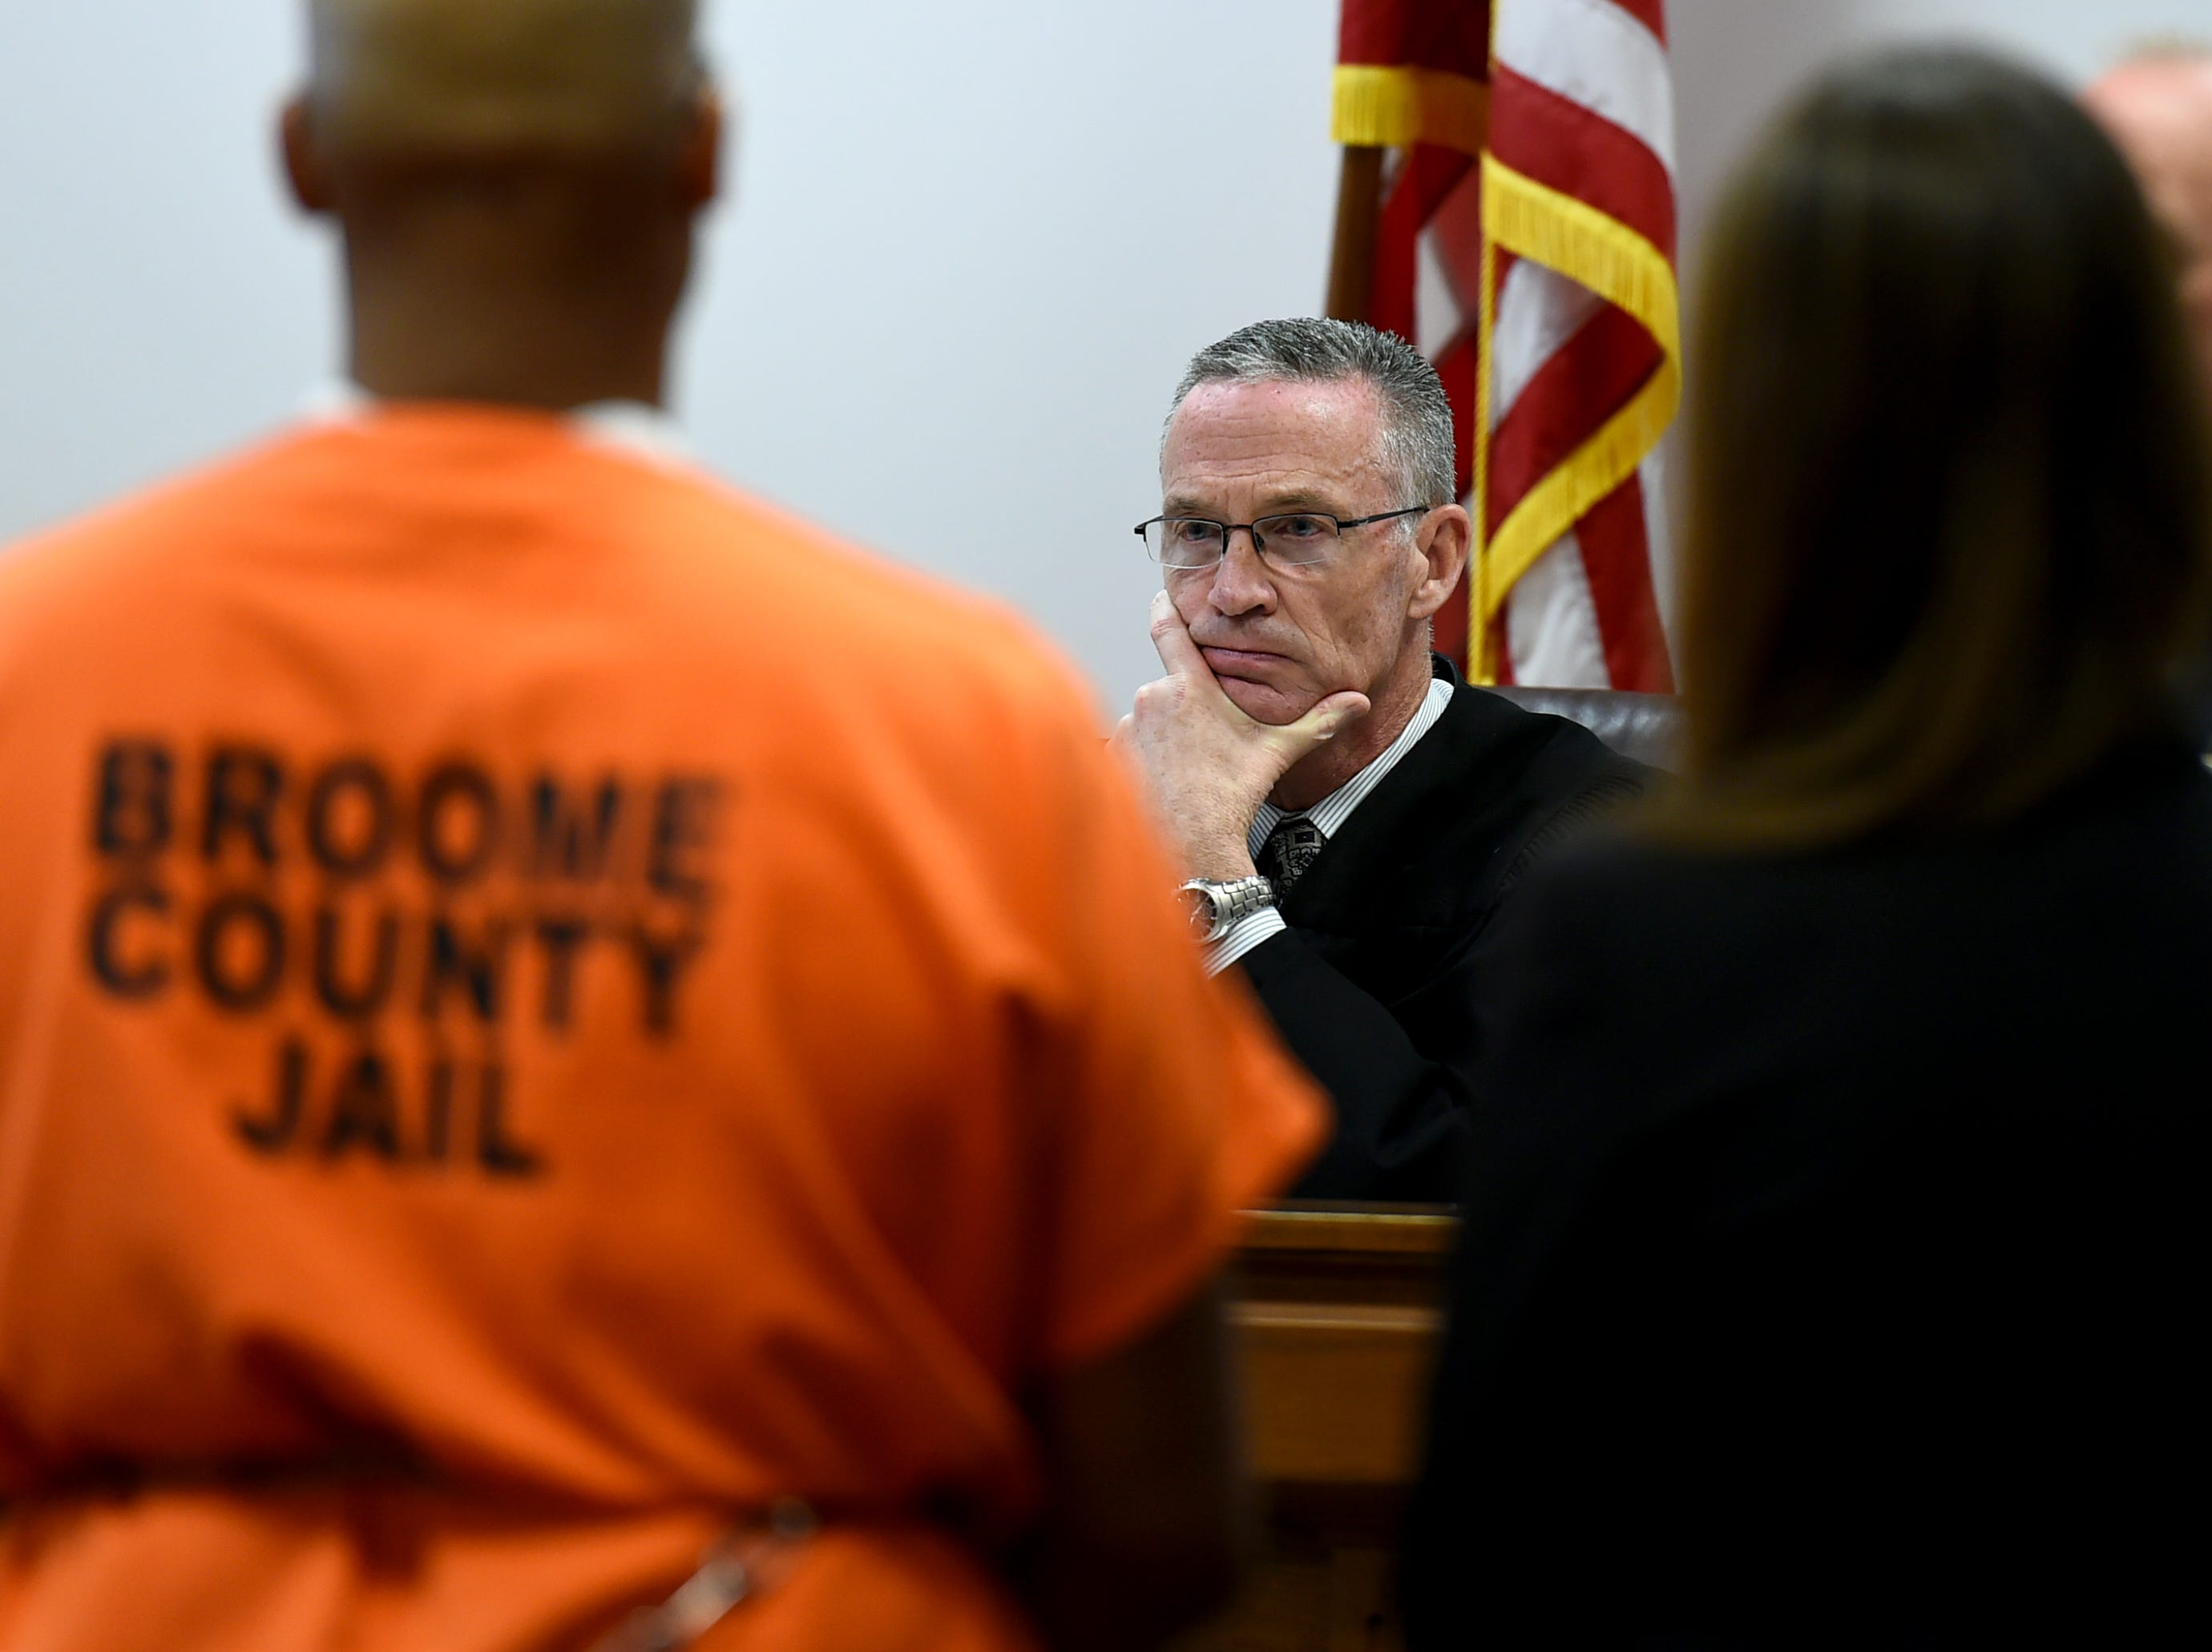 Judge Joseph Cawley listens Friday during the sentencing of Aaron Powell for the 2013 murders of Mario Masciarelli and Christina Powell.